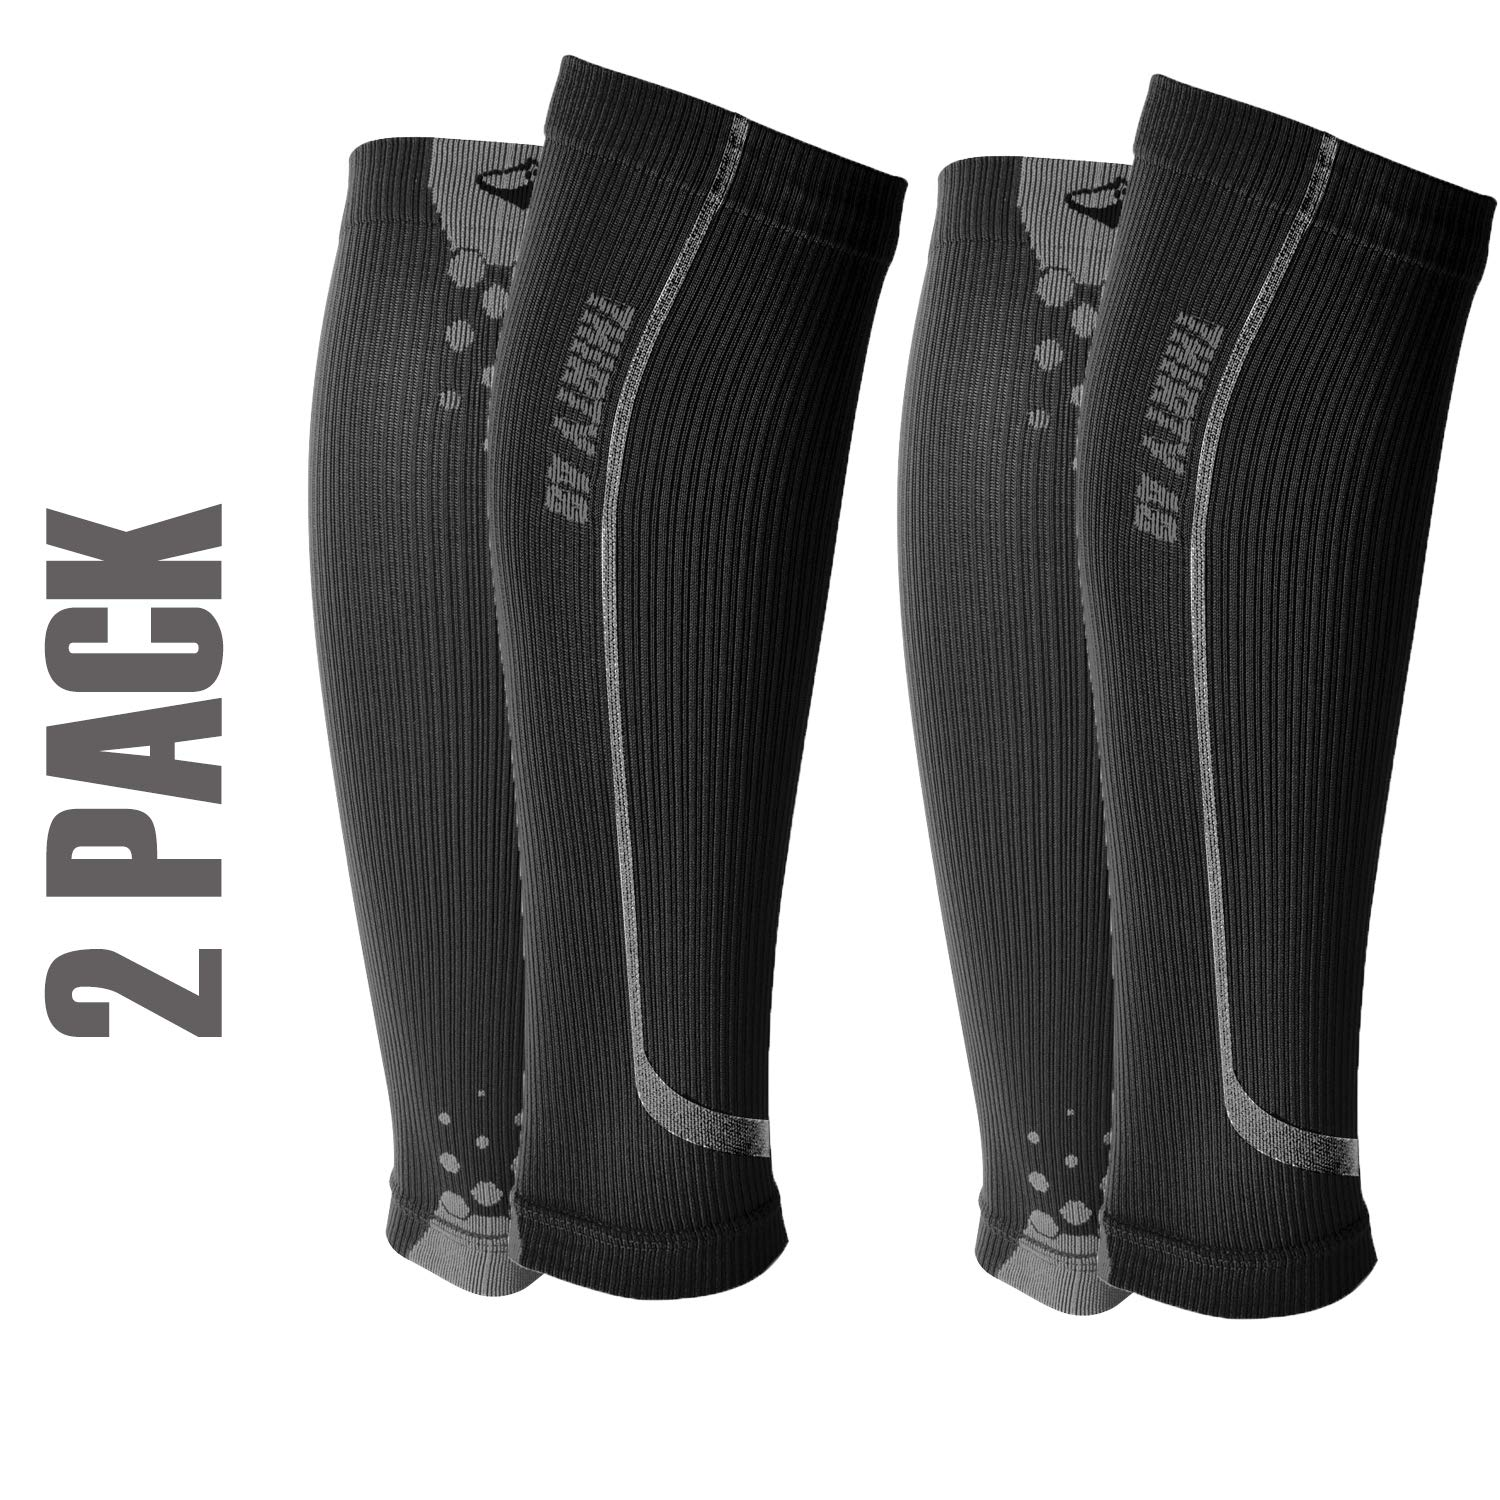 Graduated Calf Compression Sleeves by Thirty48 | 15-20 OR 20-30 mmHg | Maximize Faster Recovery by Increasing Oxygen to Muscles by Thirty 48